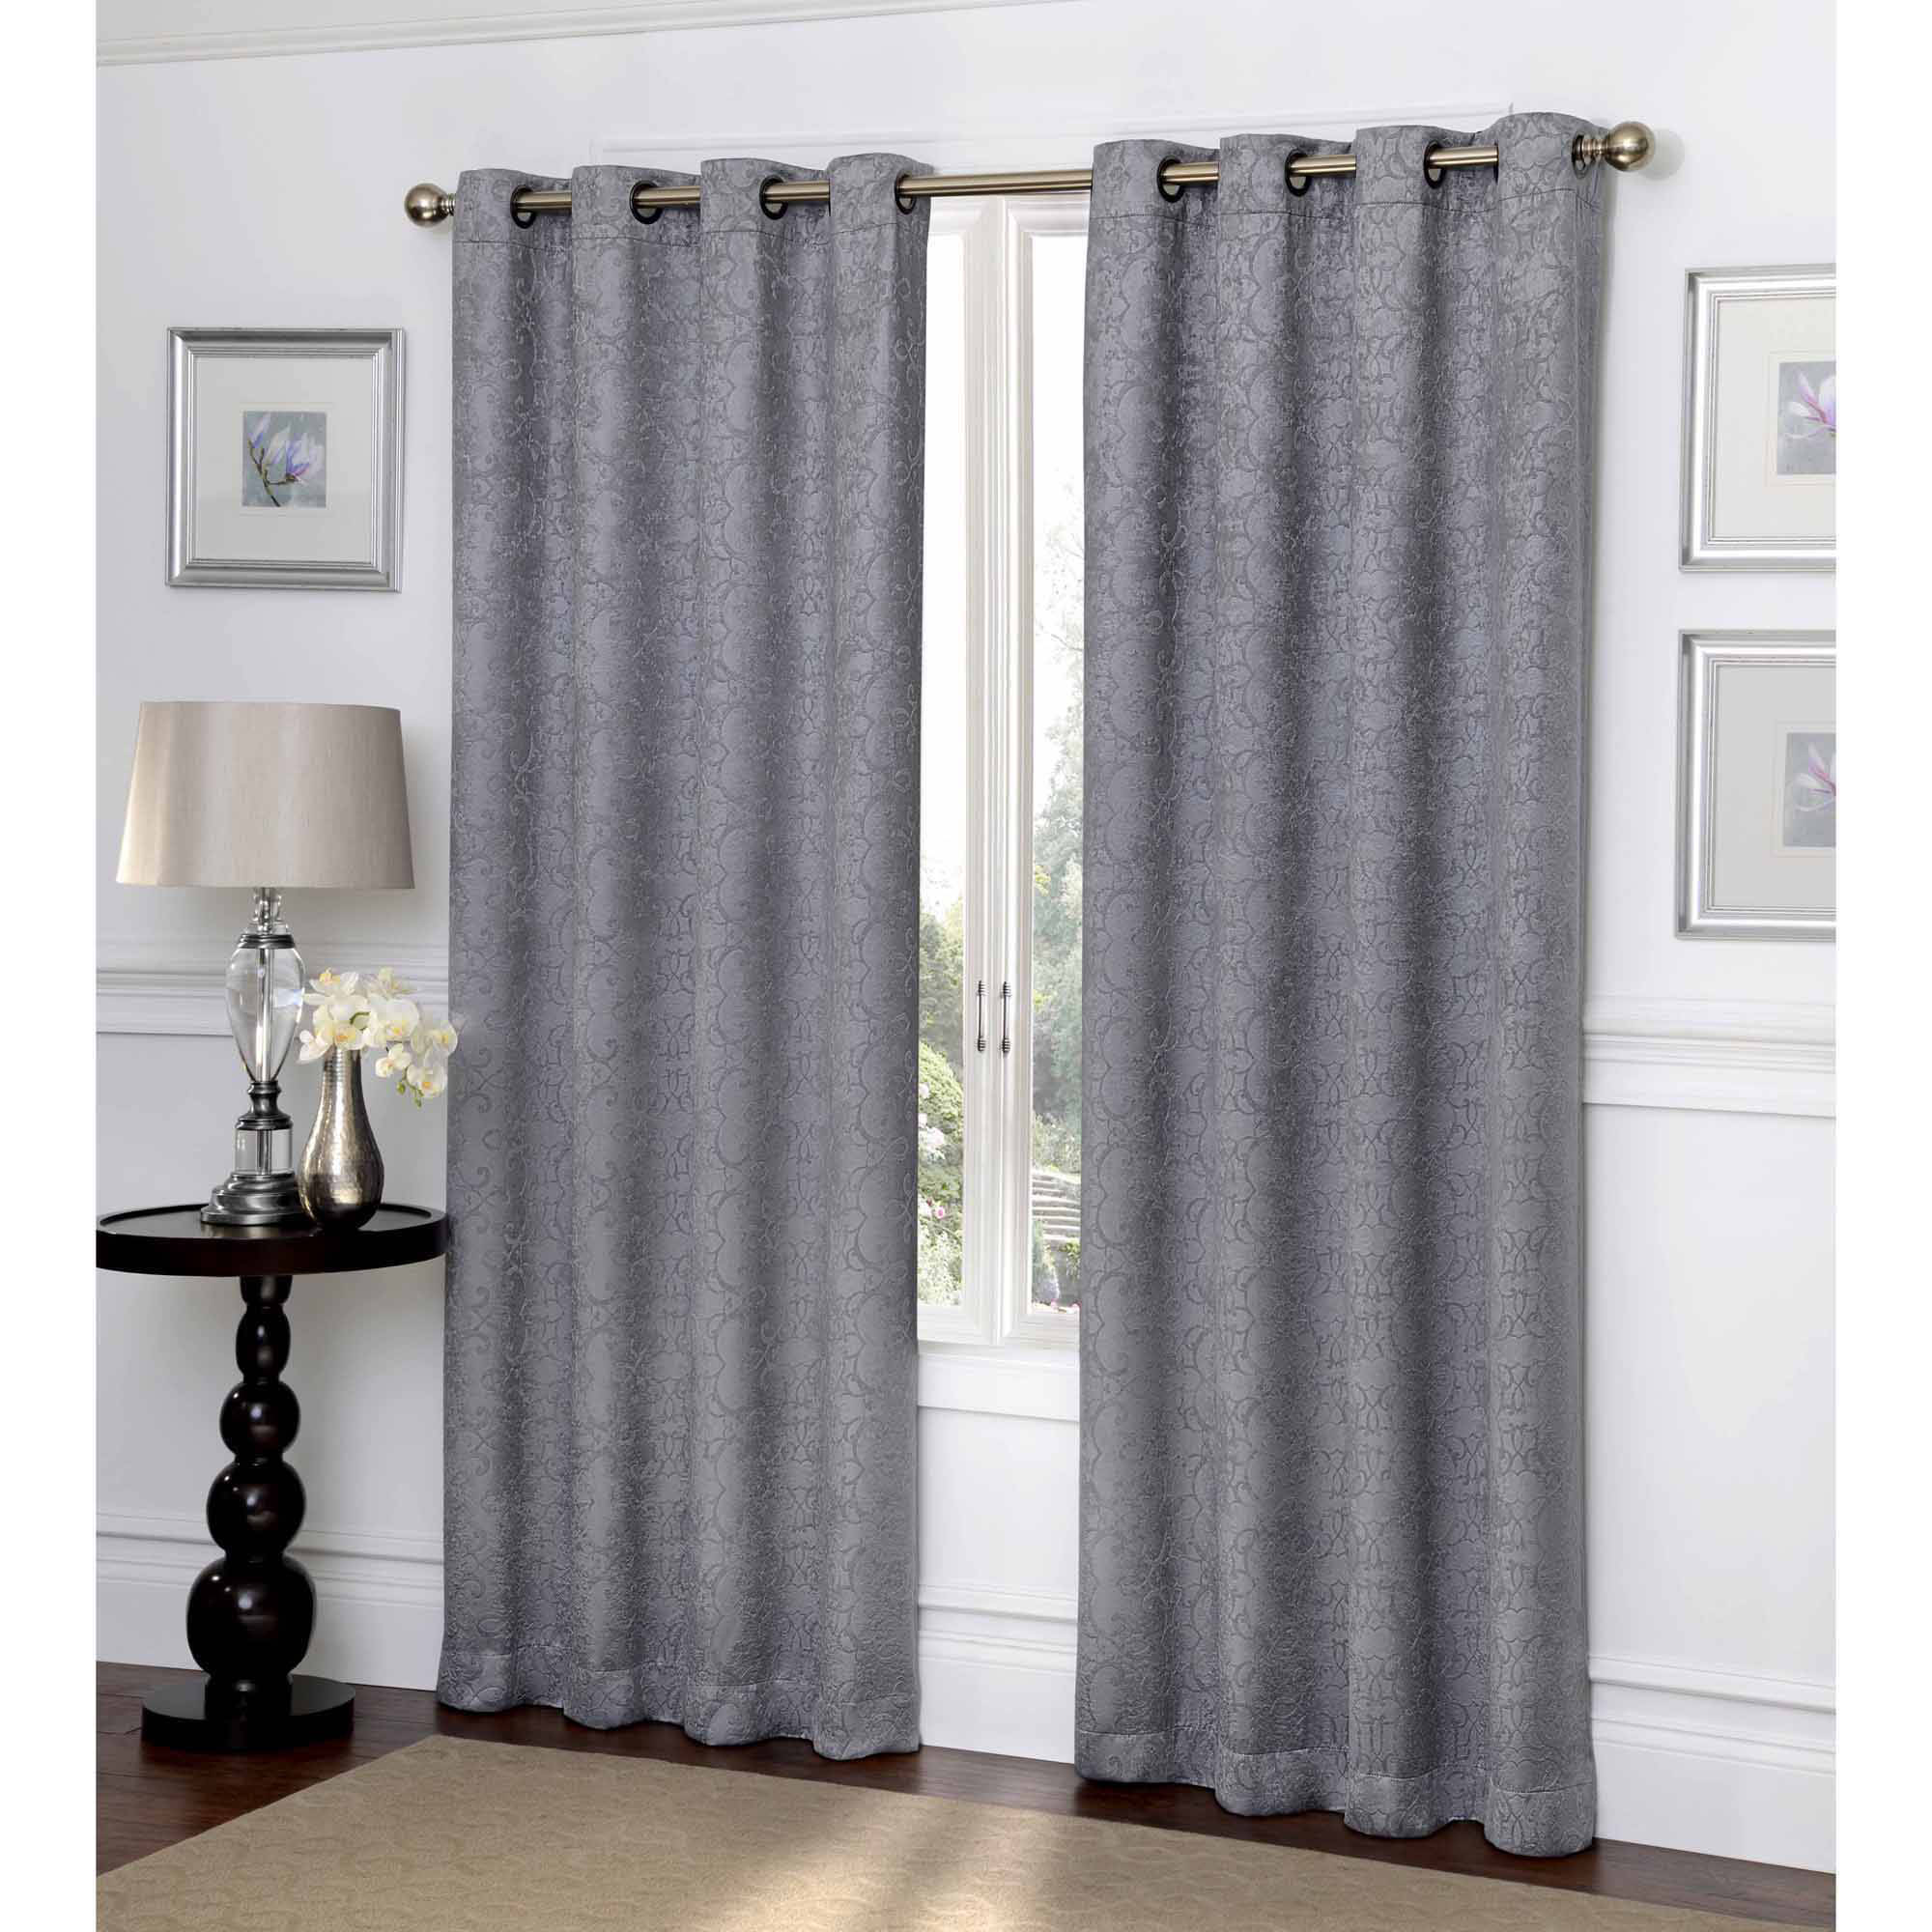 ironwork scroll blackout curtain panel - Blackout Curtain